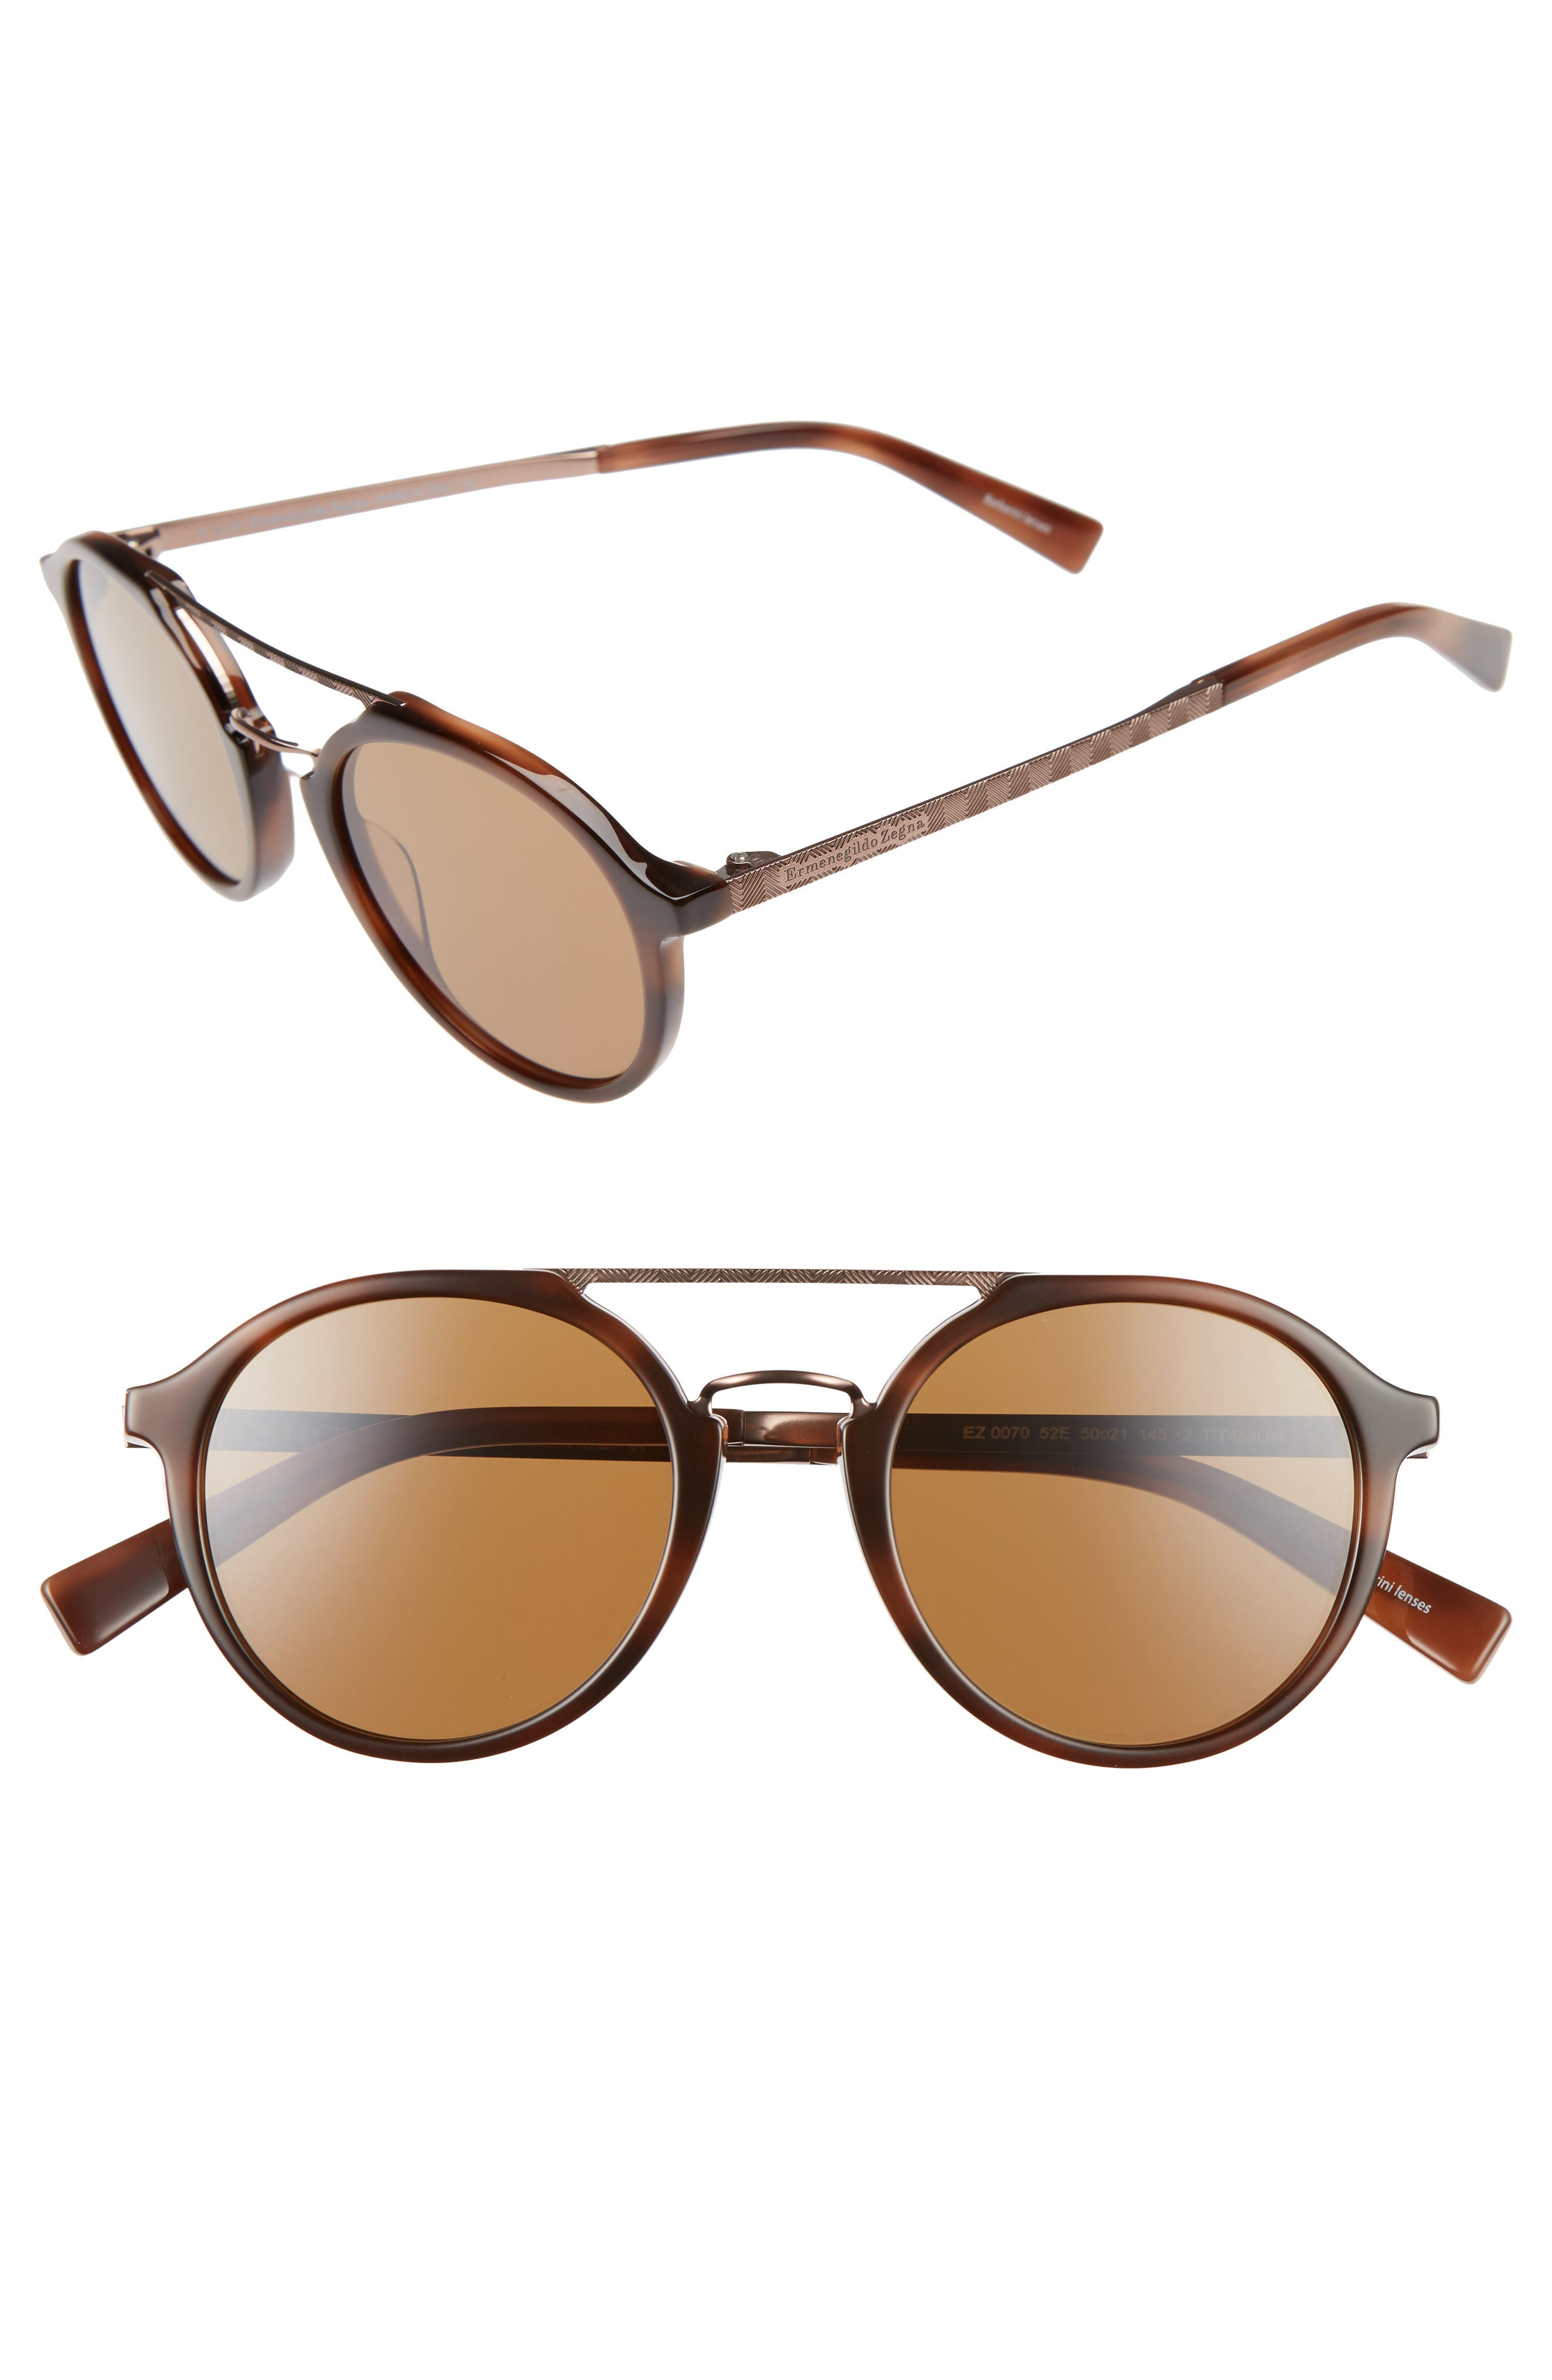 Retro 50mm Sunglasses,                             Alternate thumbnail 2, color,                             HAVANA/ LIGHT BRONZE/ BROWN